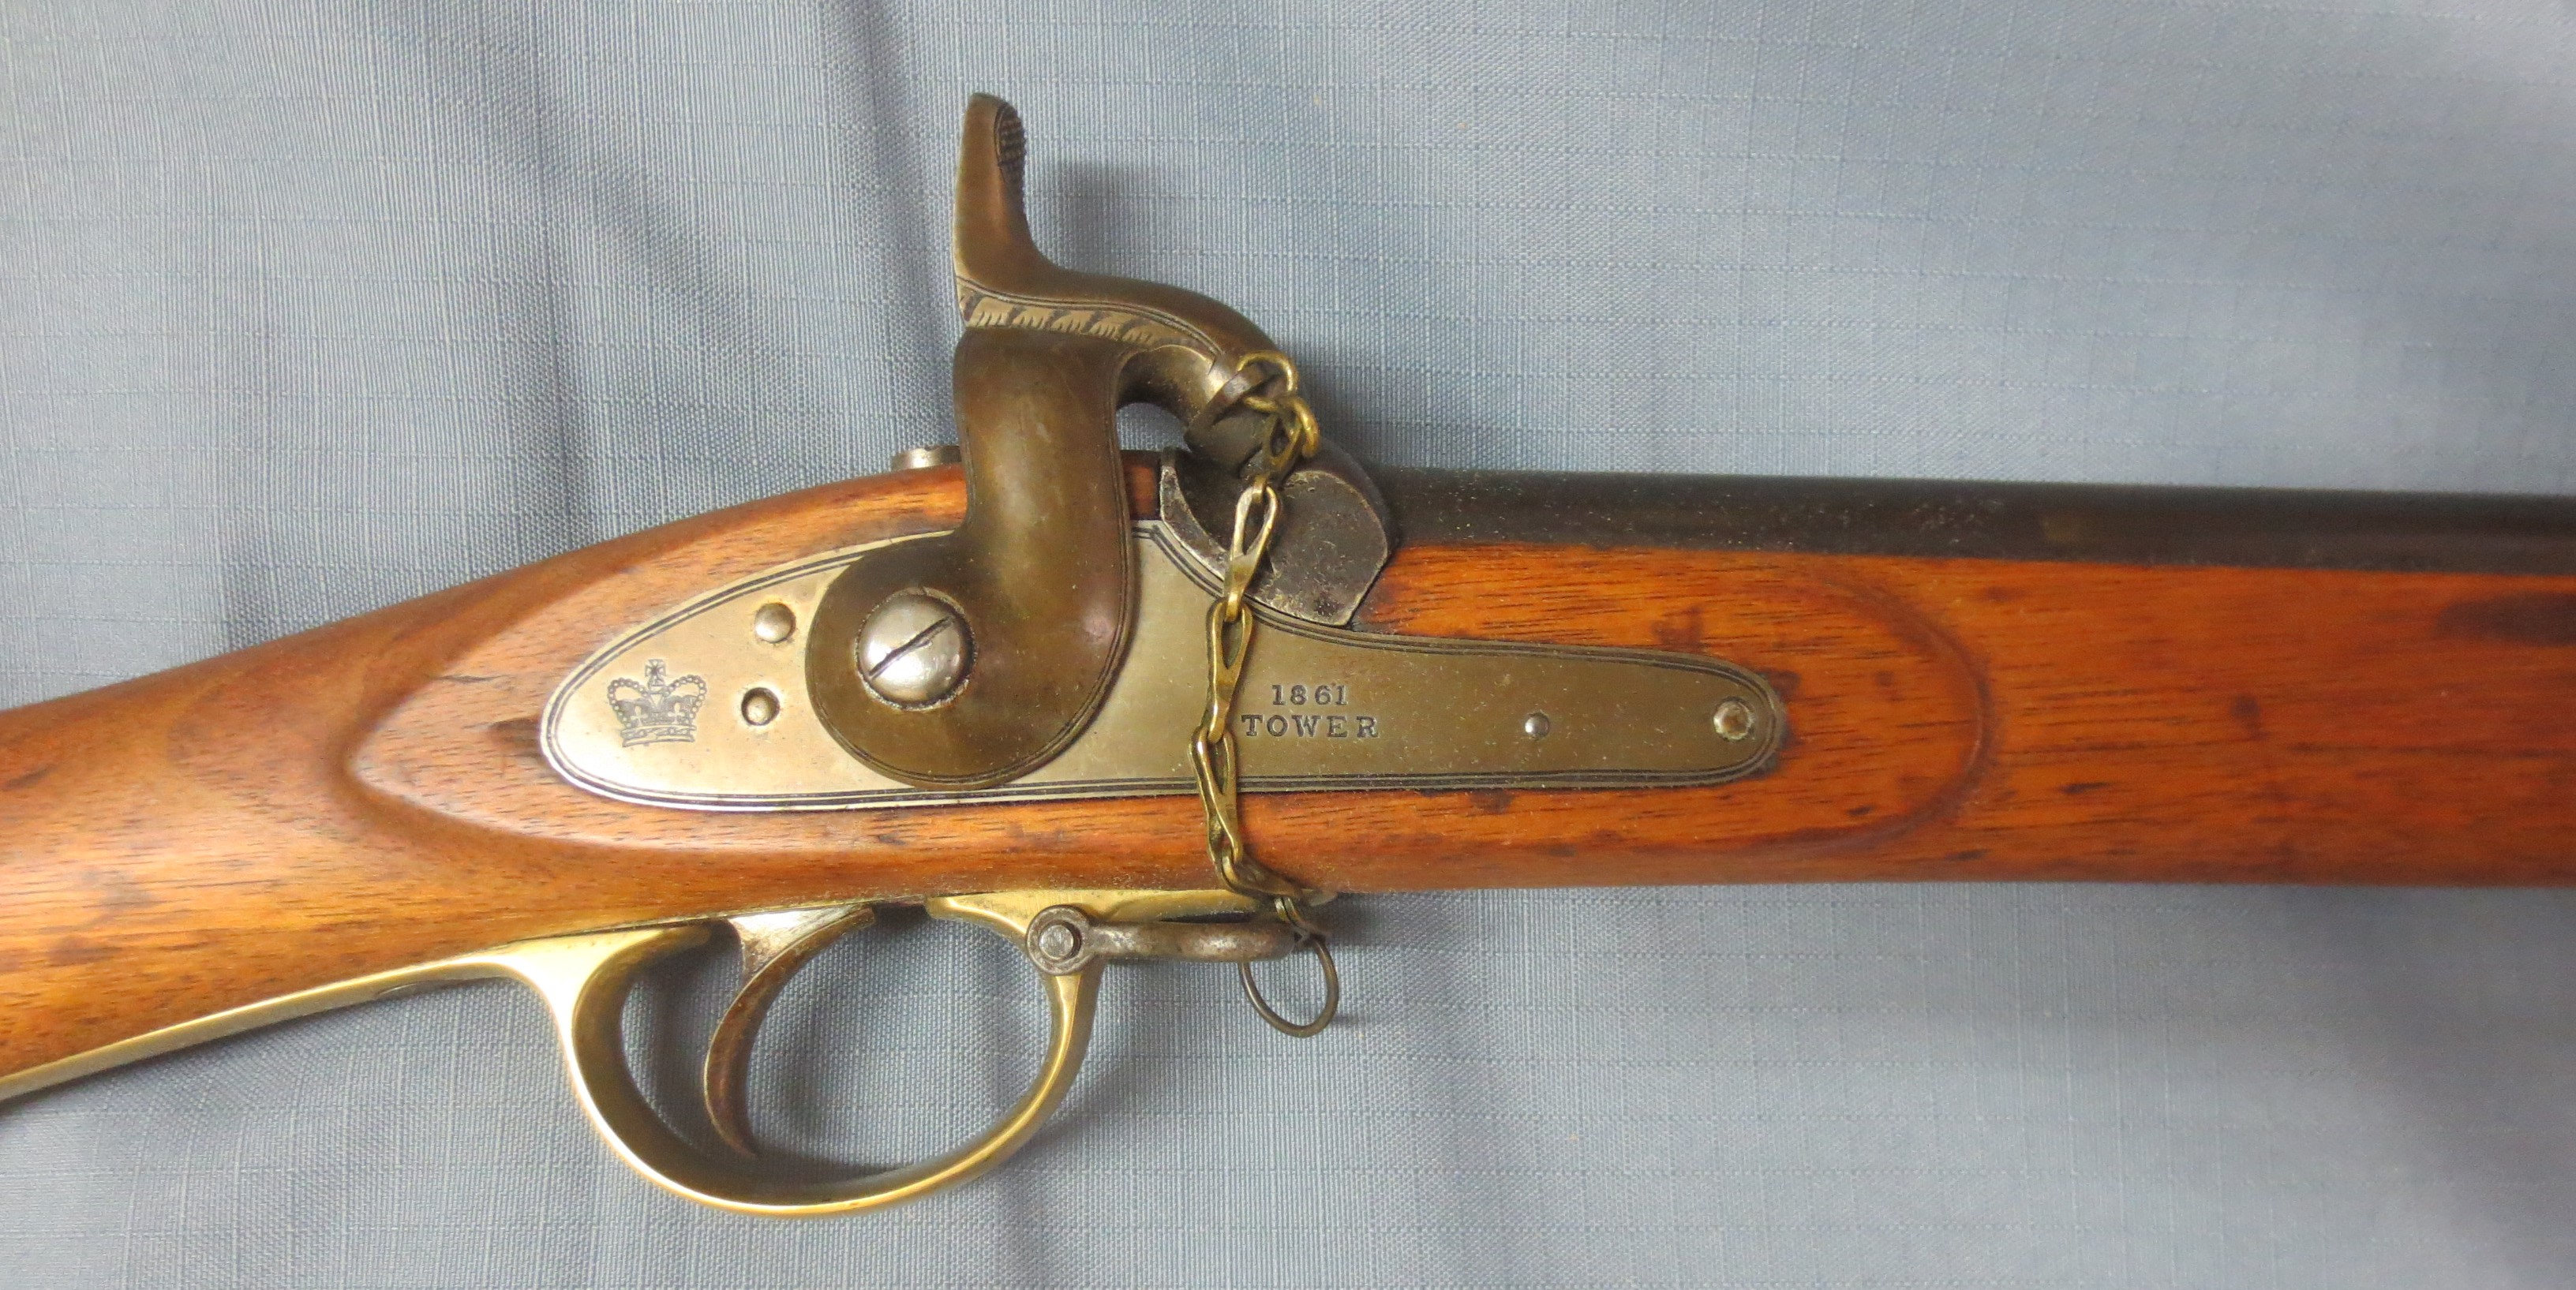 Pristine imported Tower Enfield Naval Pattern rifled musket, 1861 dated